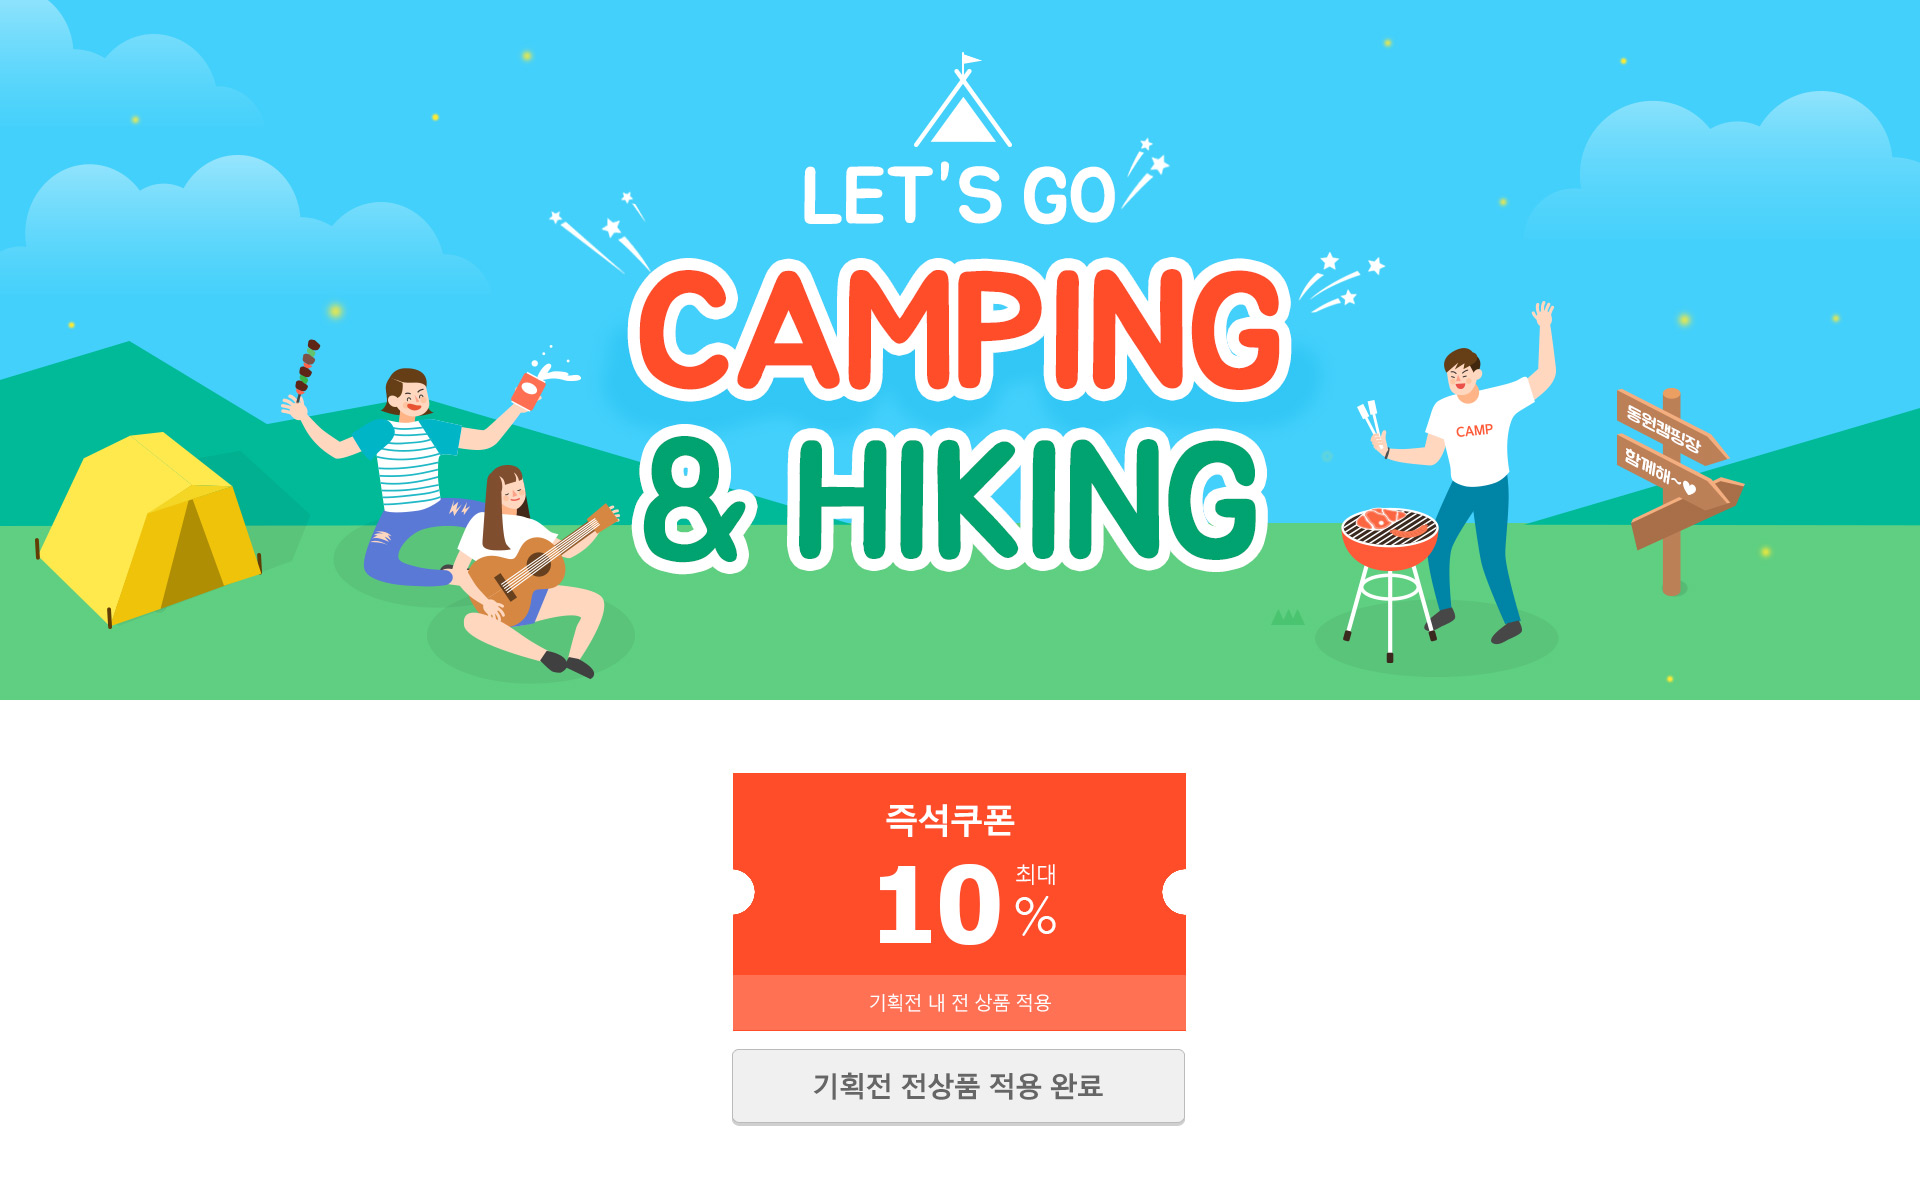 LETS GO CAMPING&HIKING